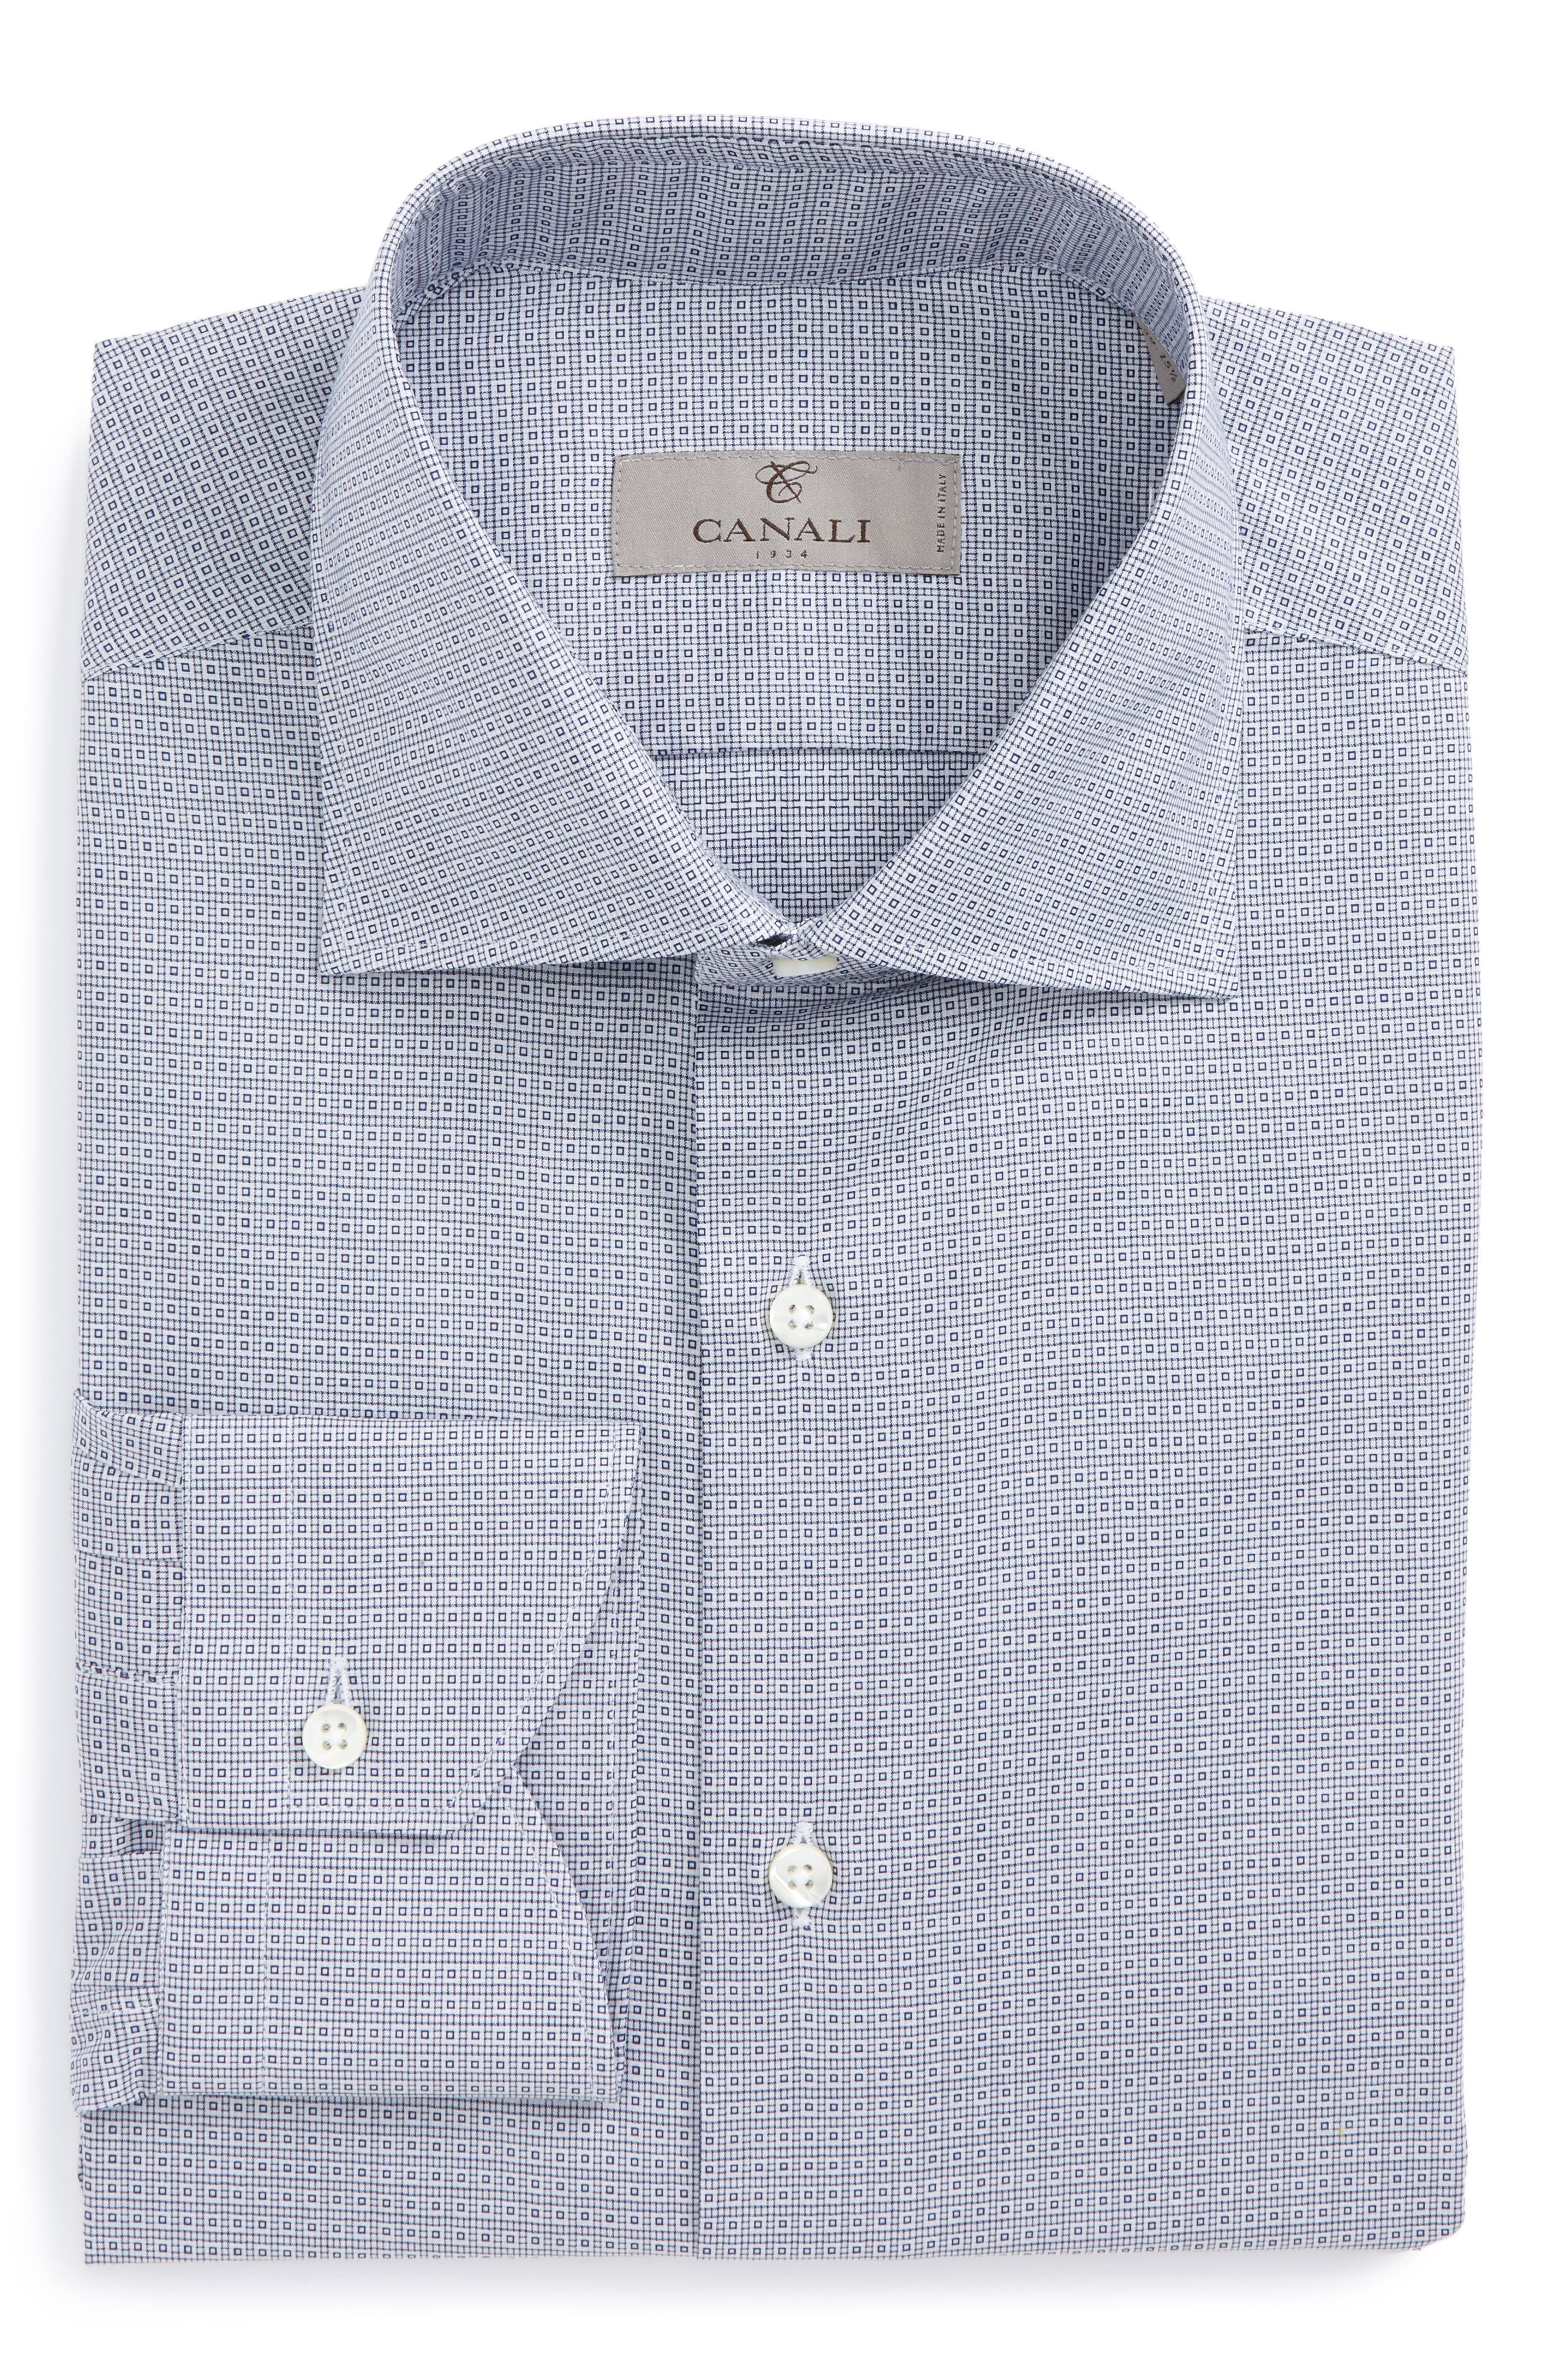 Main Image - Canali Regular Fit Geometric Dress Shirt